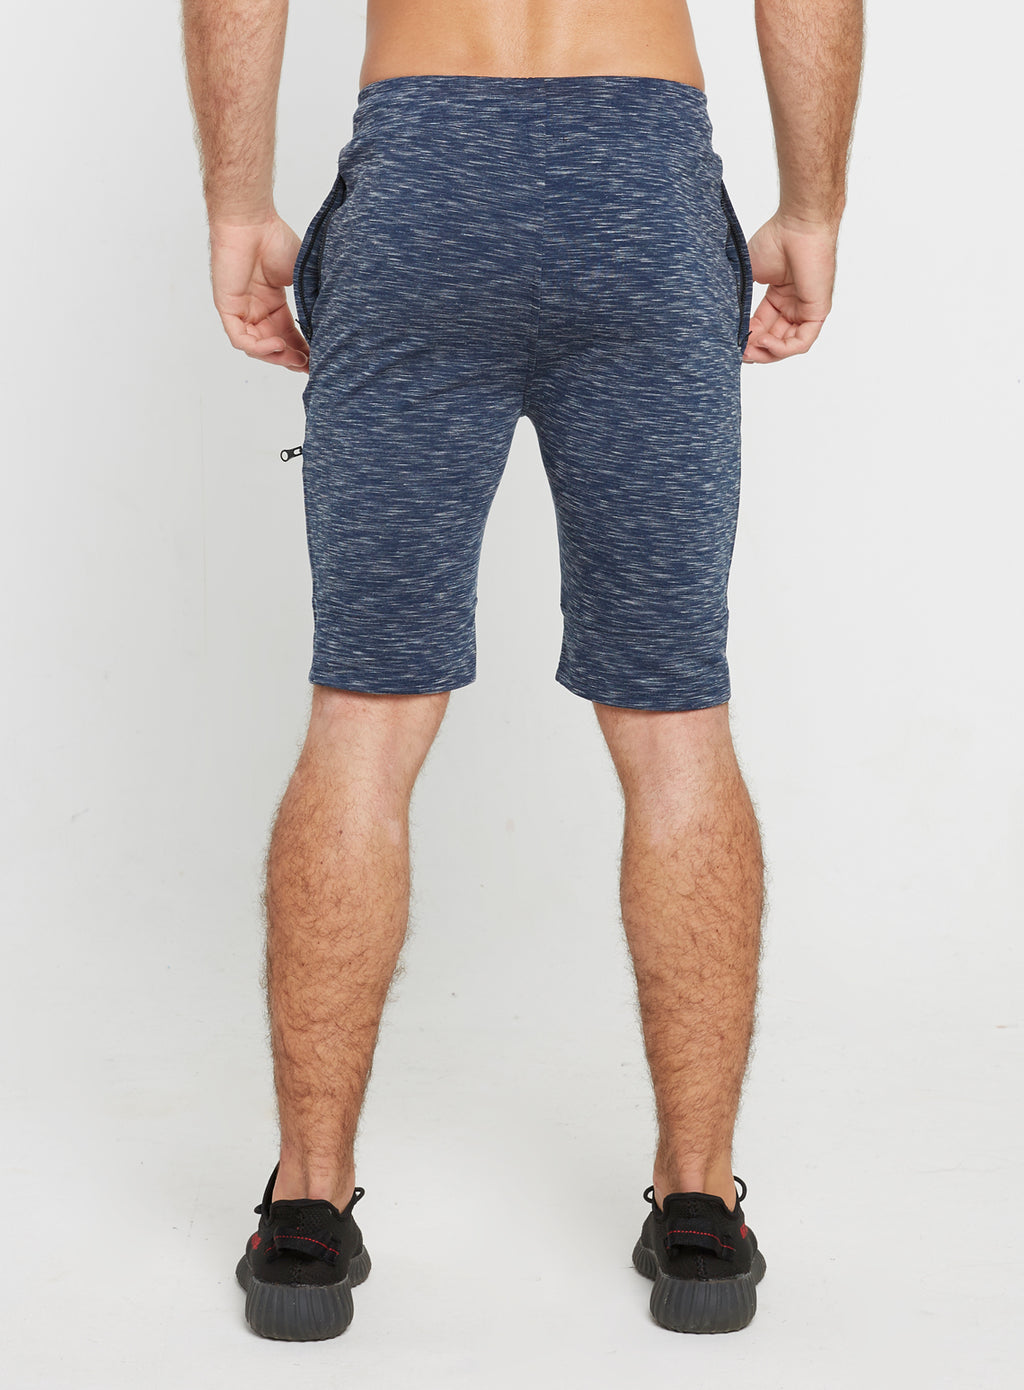 Gym Monkee - Navy Striped Shorts REAR